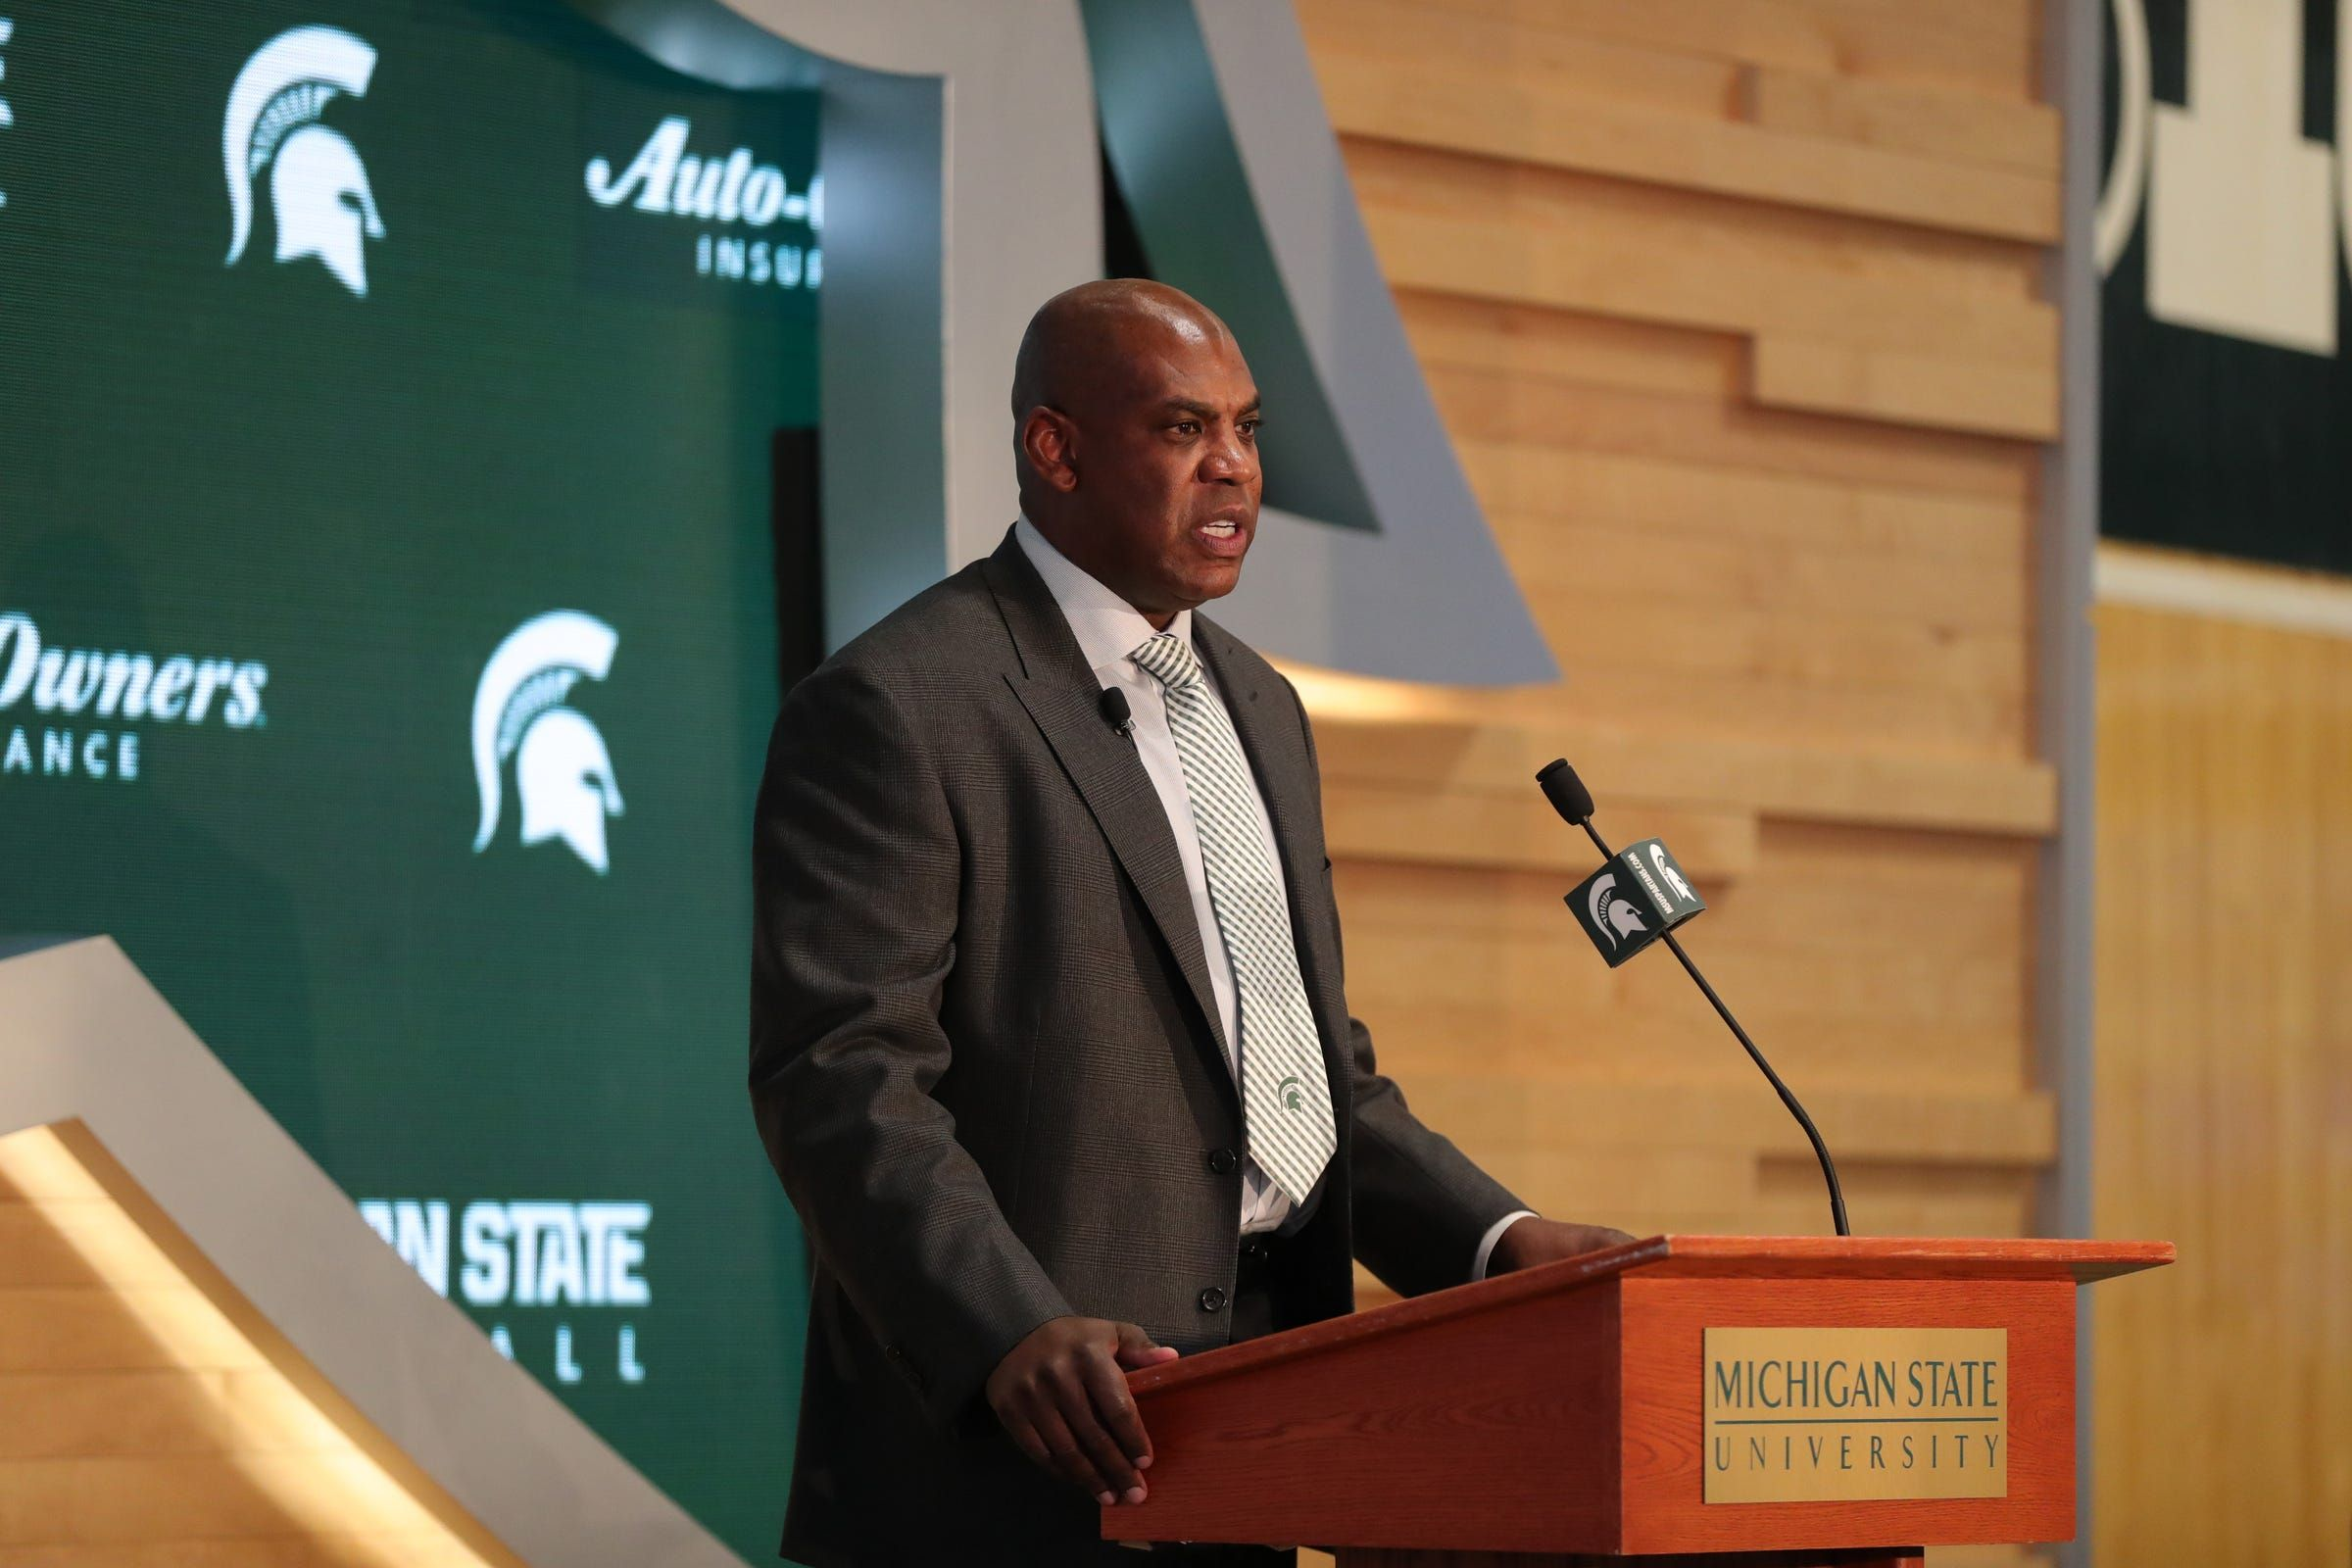 Michigan State Football Coach Mel Tucker S Contract Details Just How Much Is Pay Raise In 2020 Michigan State Football Michigan State Football Coach